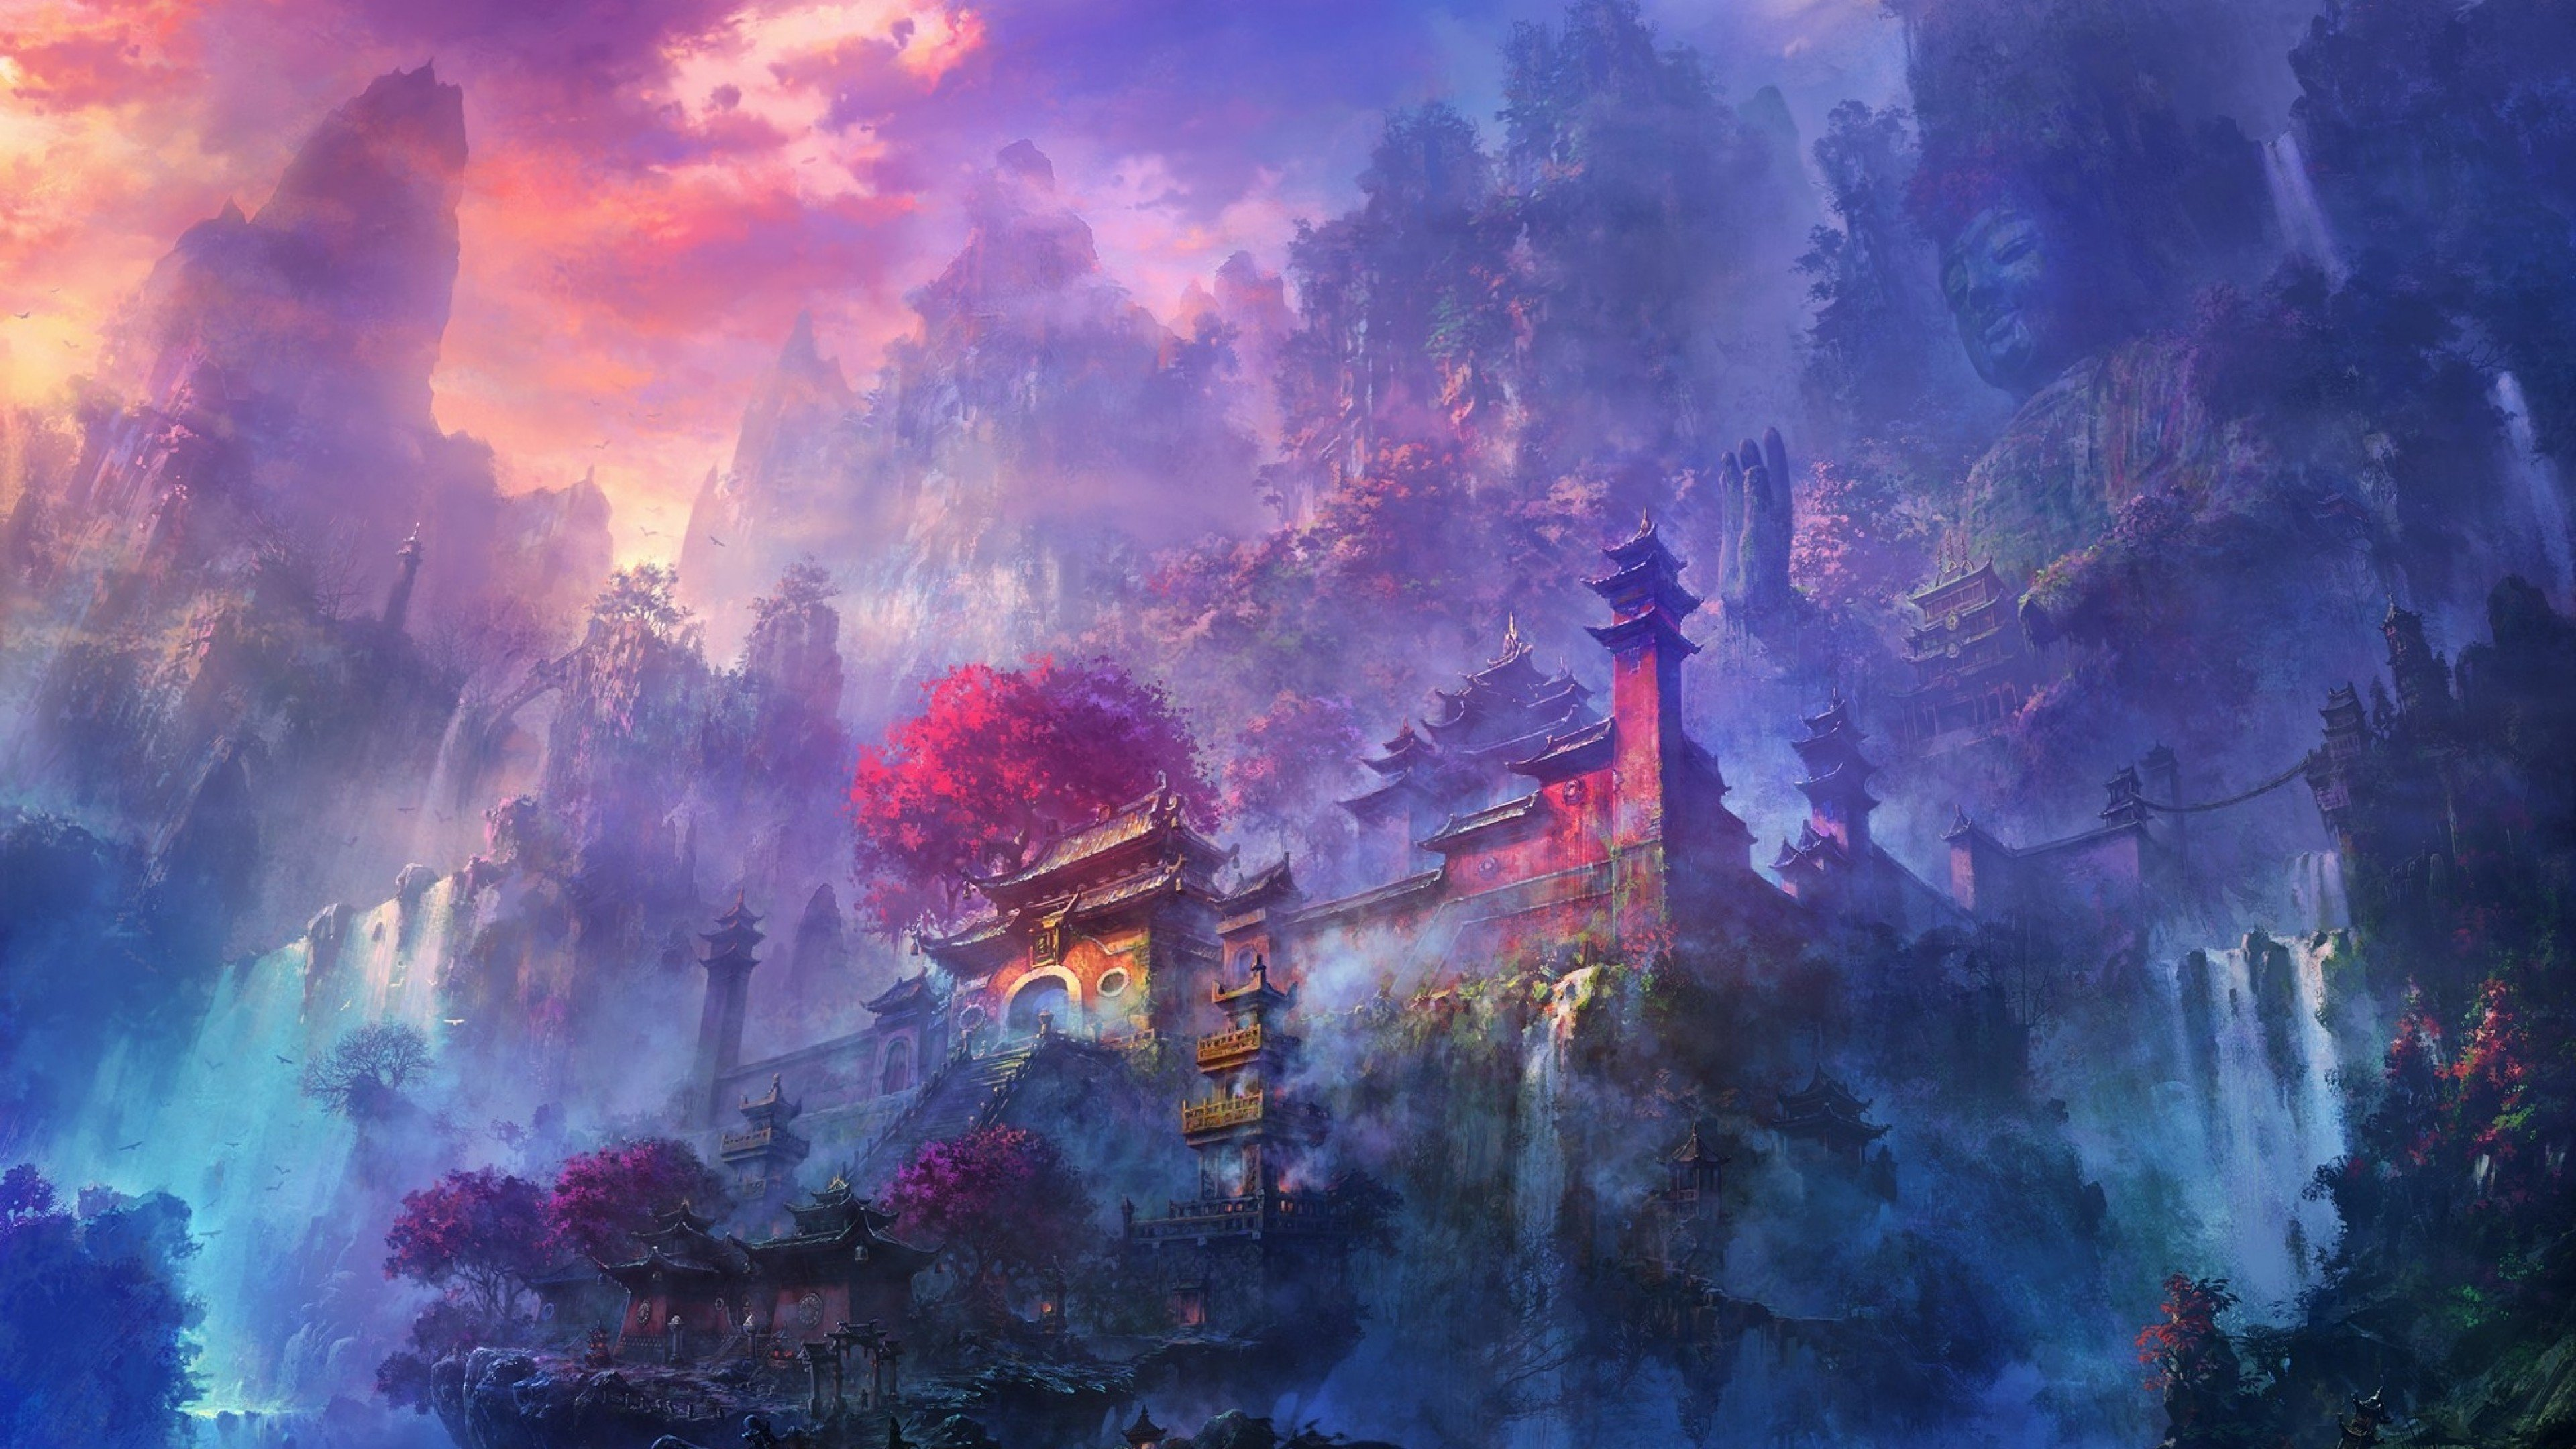 Temple wallpapers 4k for your phone and desktop screen - Japanese wallpaper phone ...